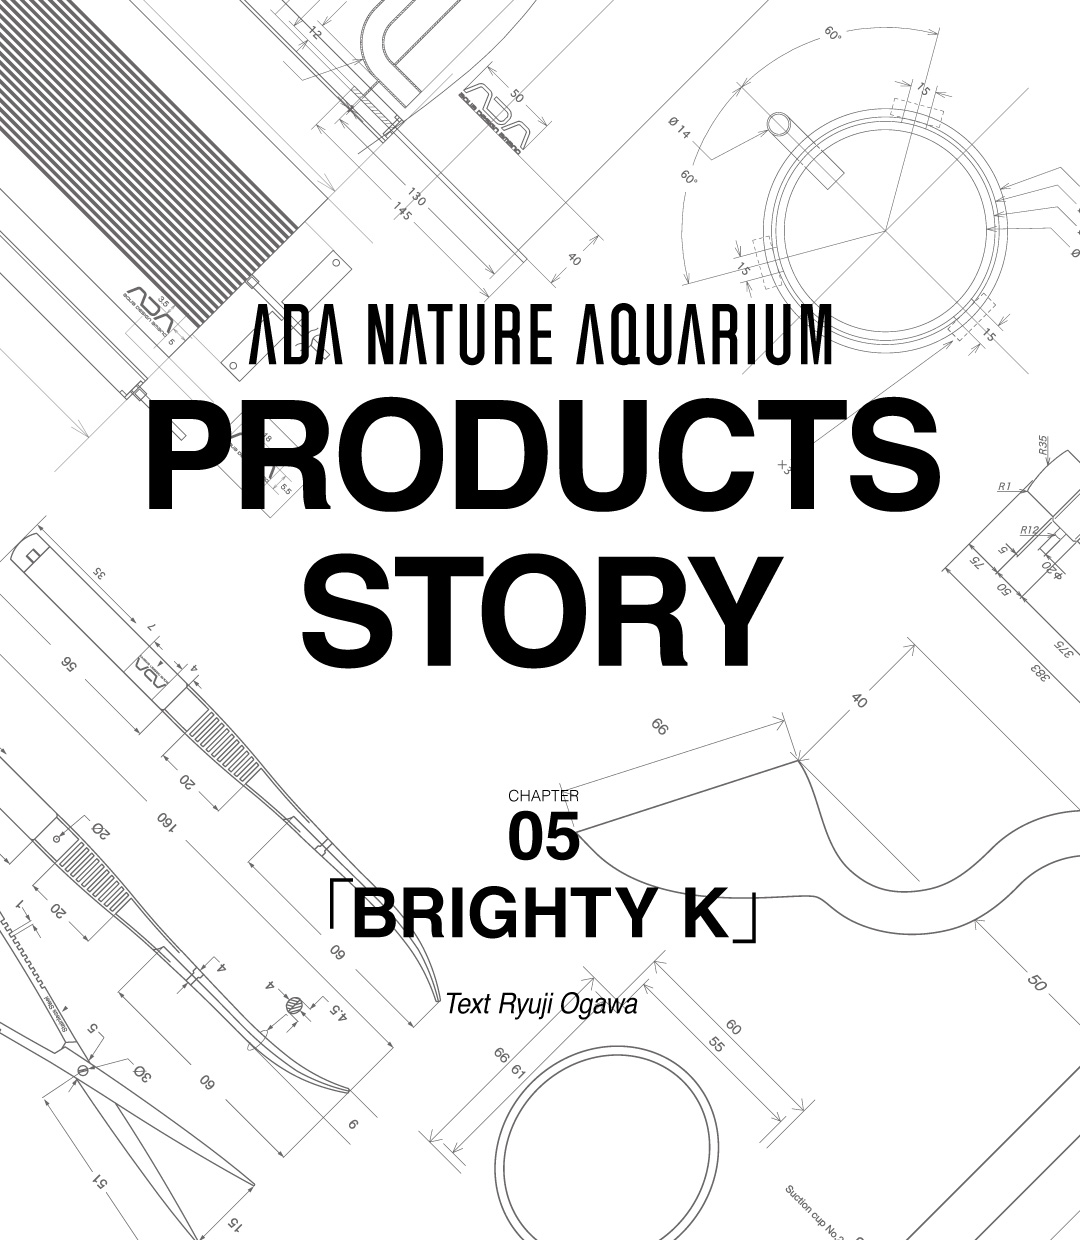 NA PRODUCTS STORY #05 BRIGHTY K